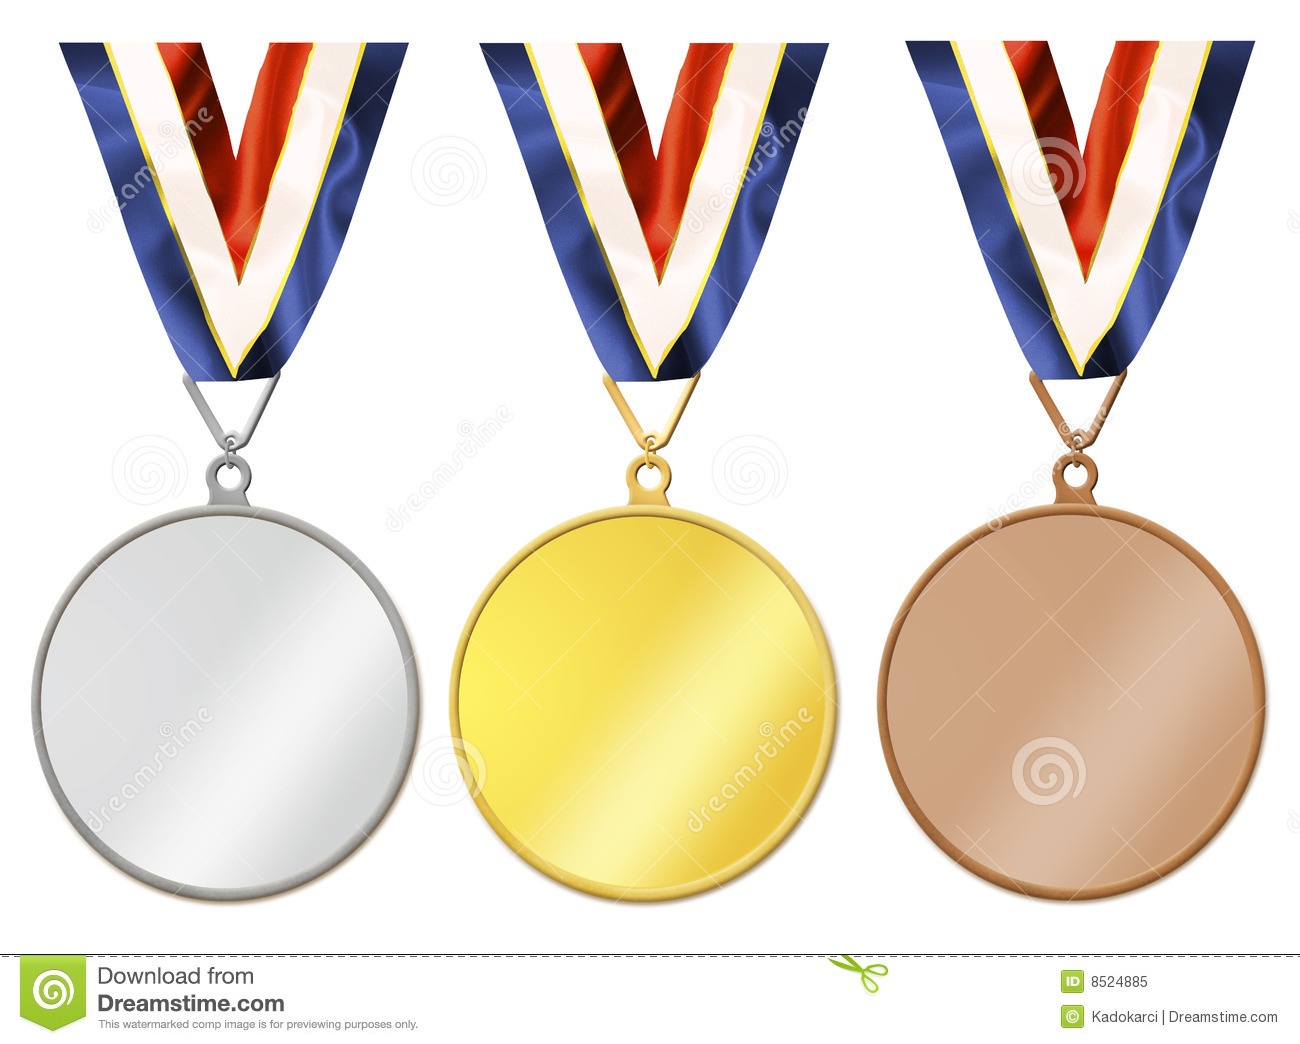 Blank Medals Royalty Free Stock Photo   Image  8524885